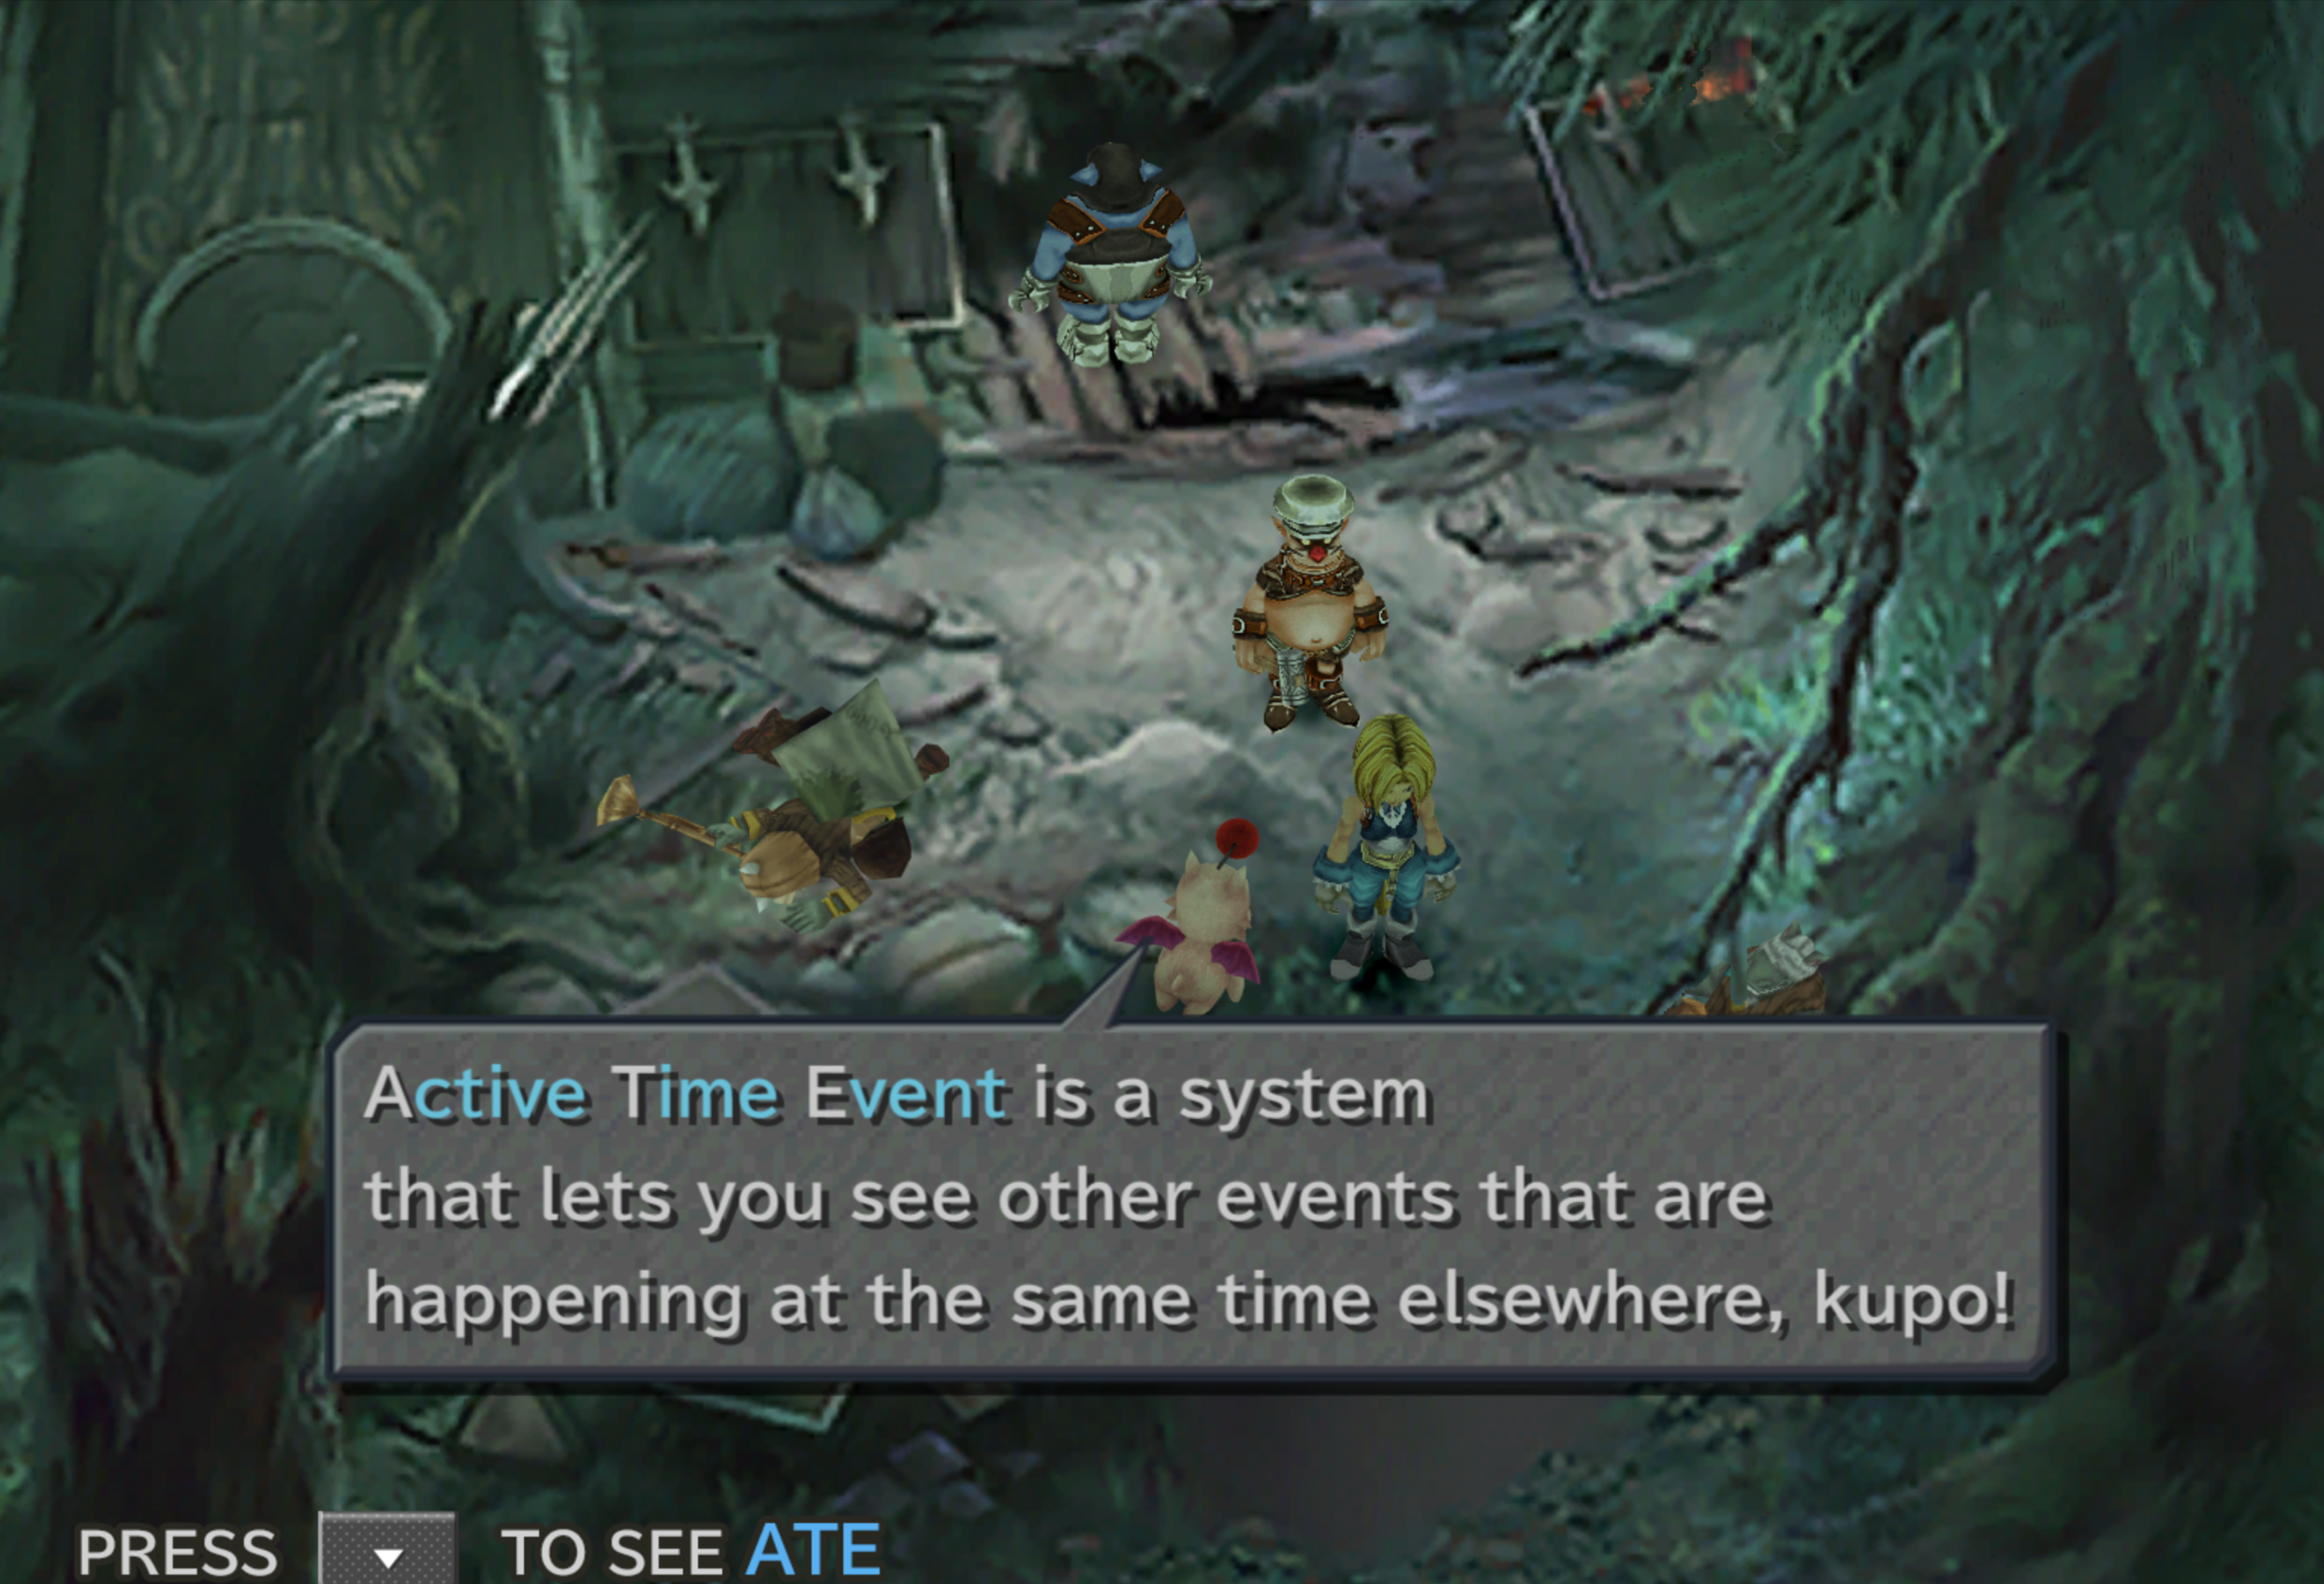 Active Time Event